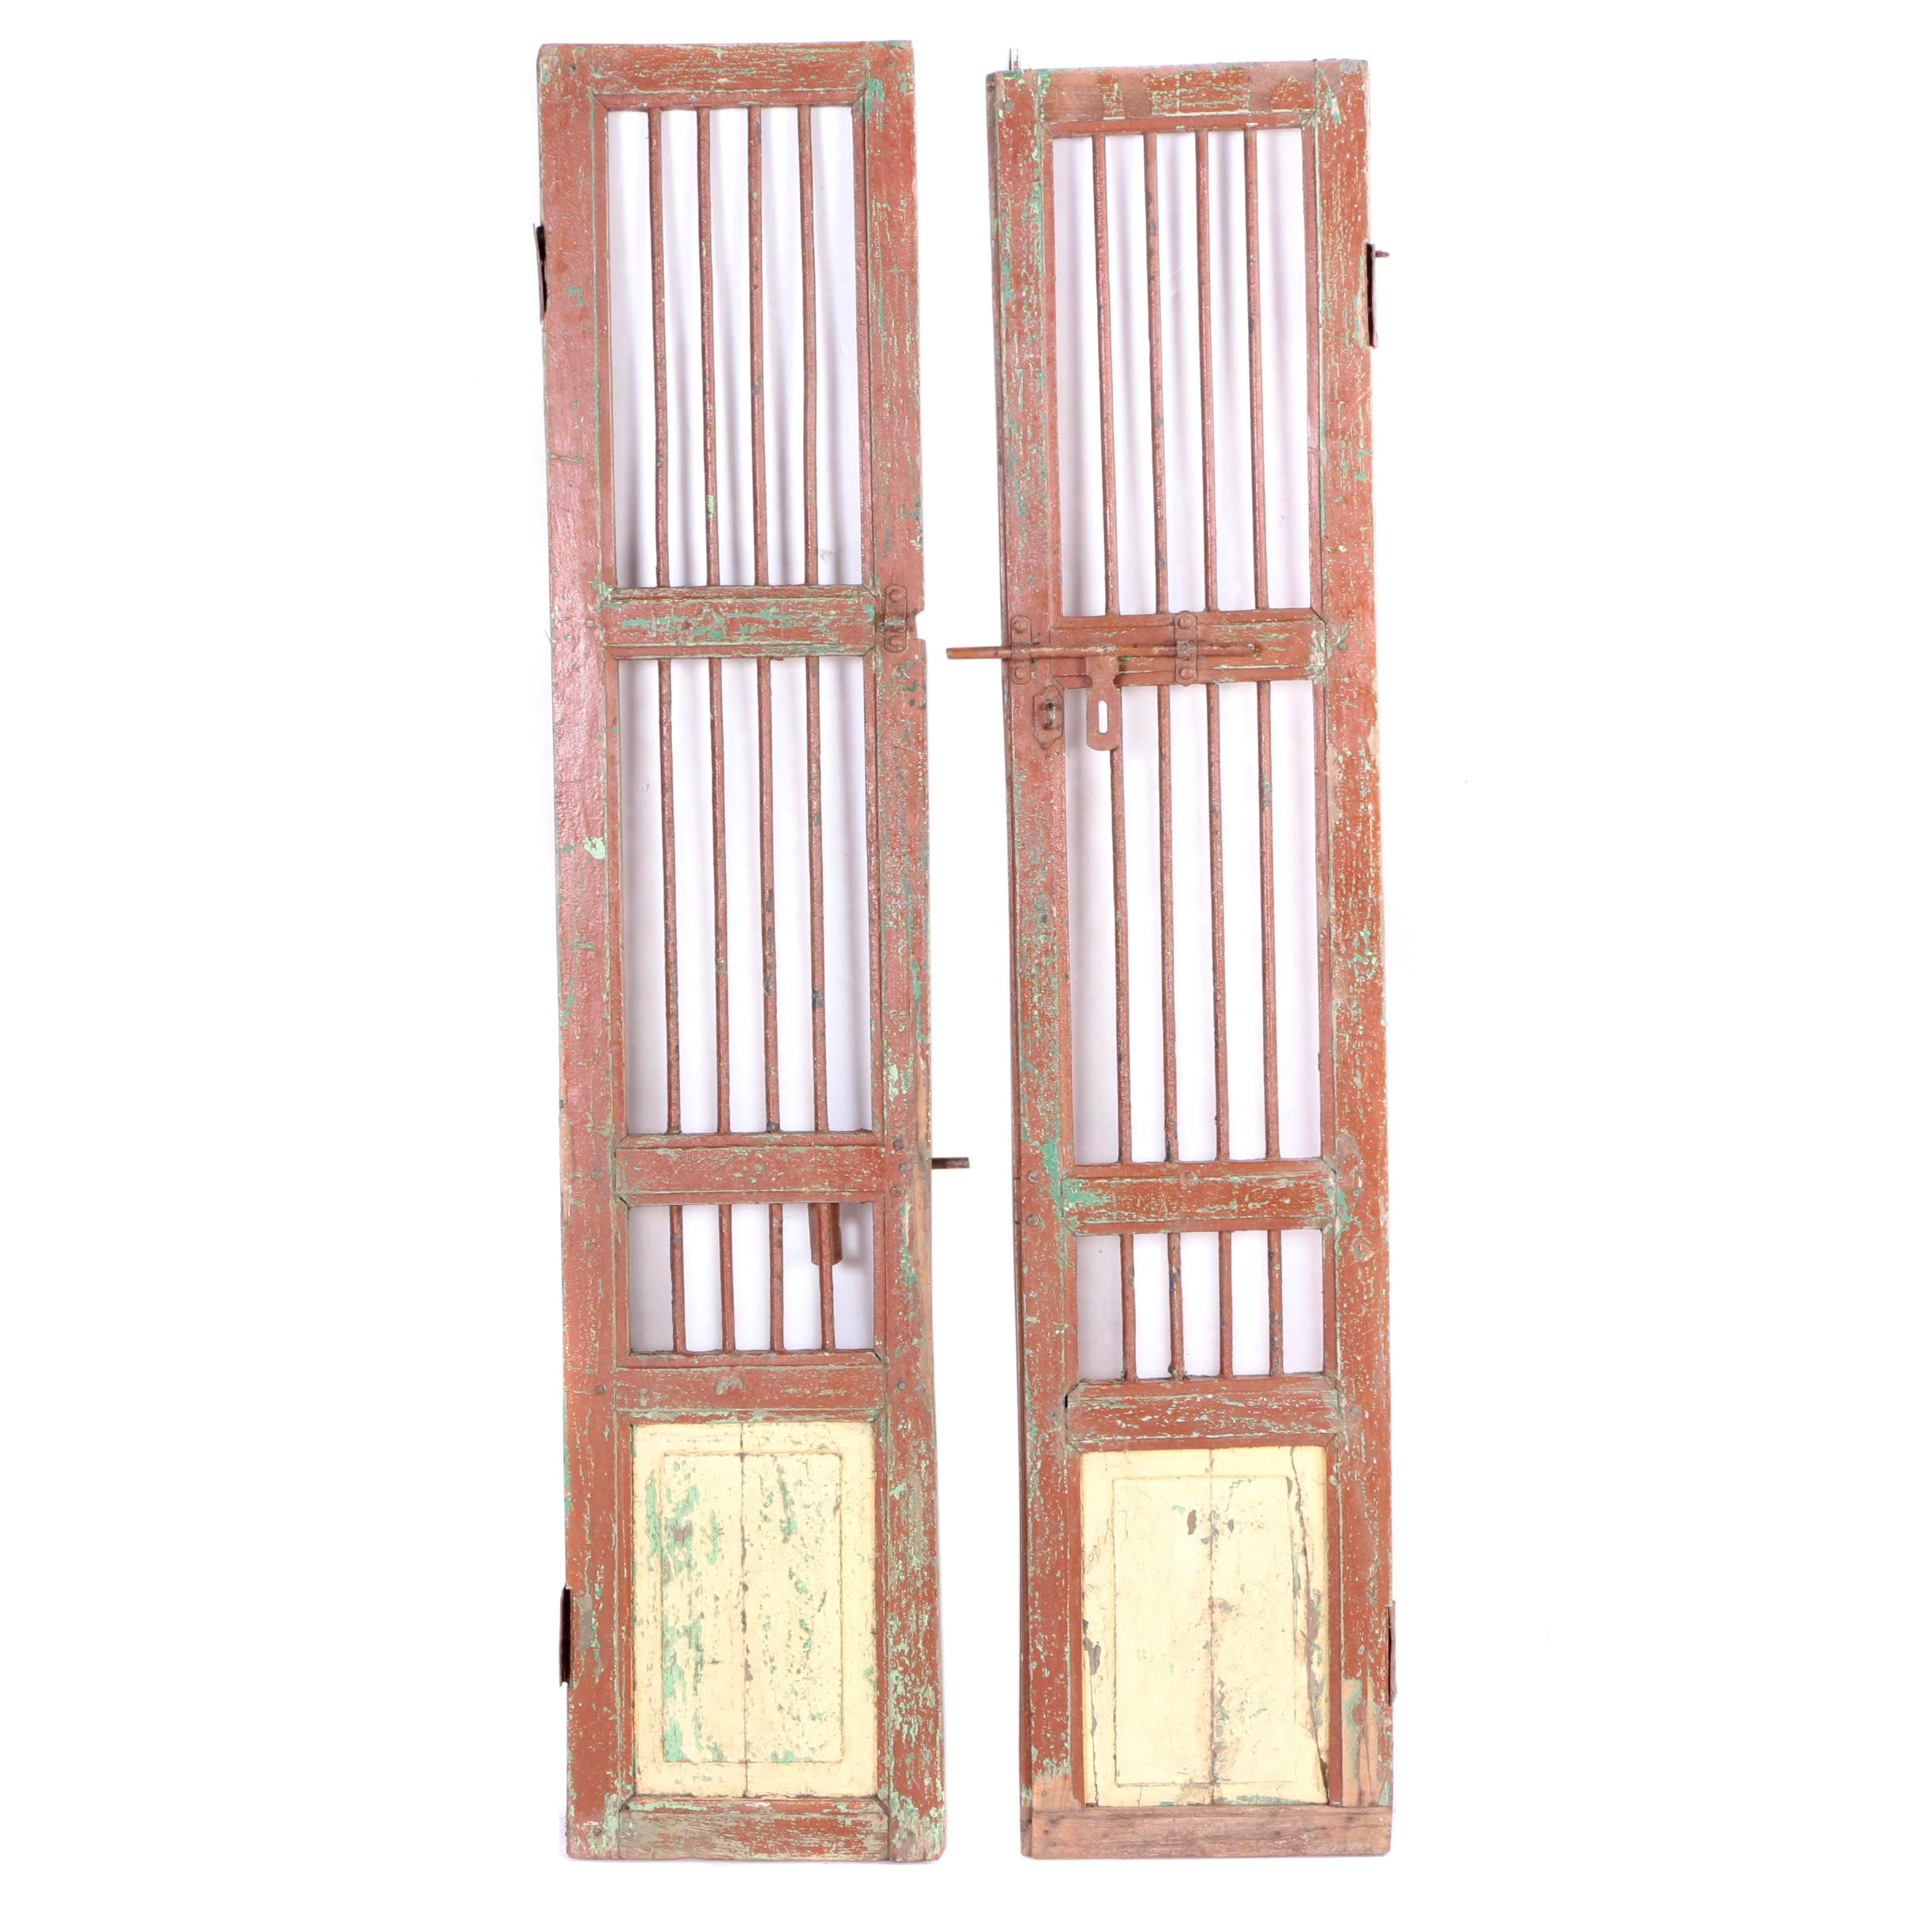 Pair of Salvaged Painted Doors With Iron Bars and Raised Panels